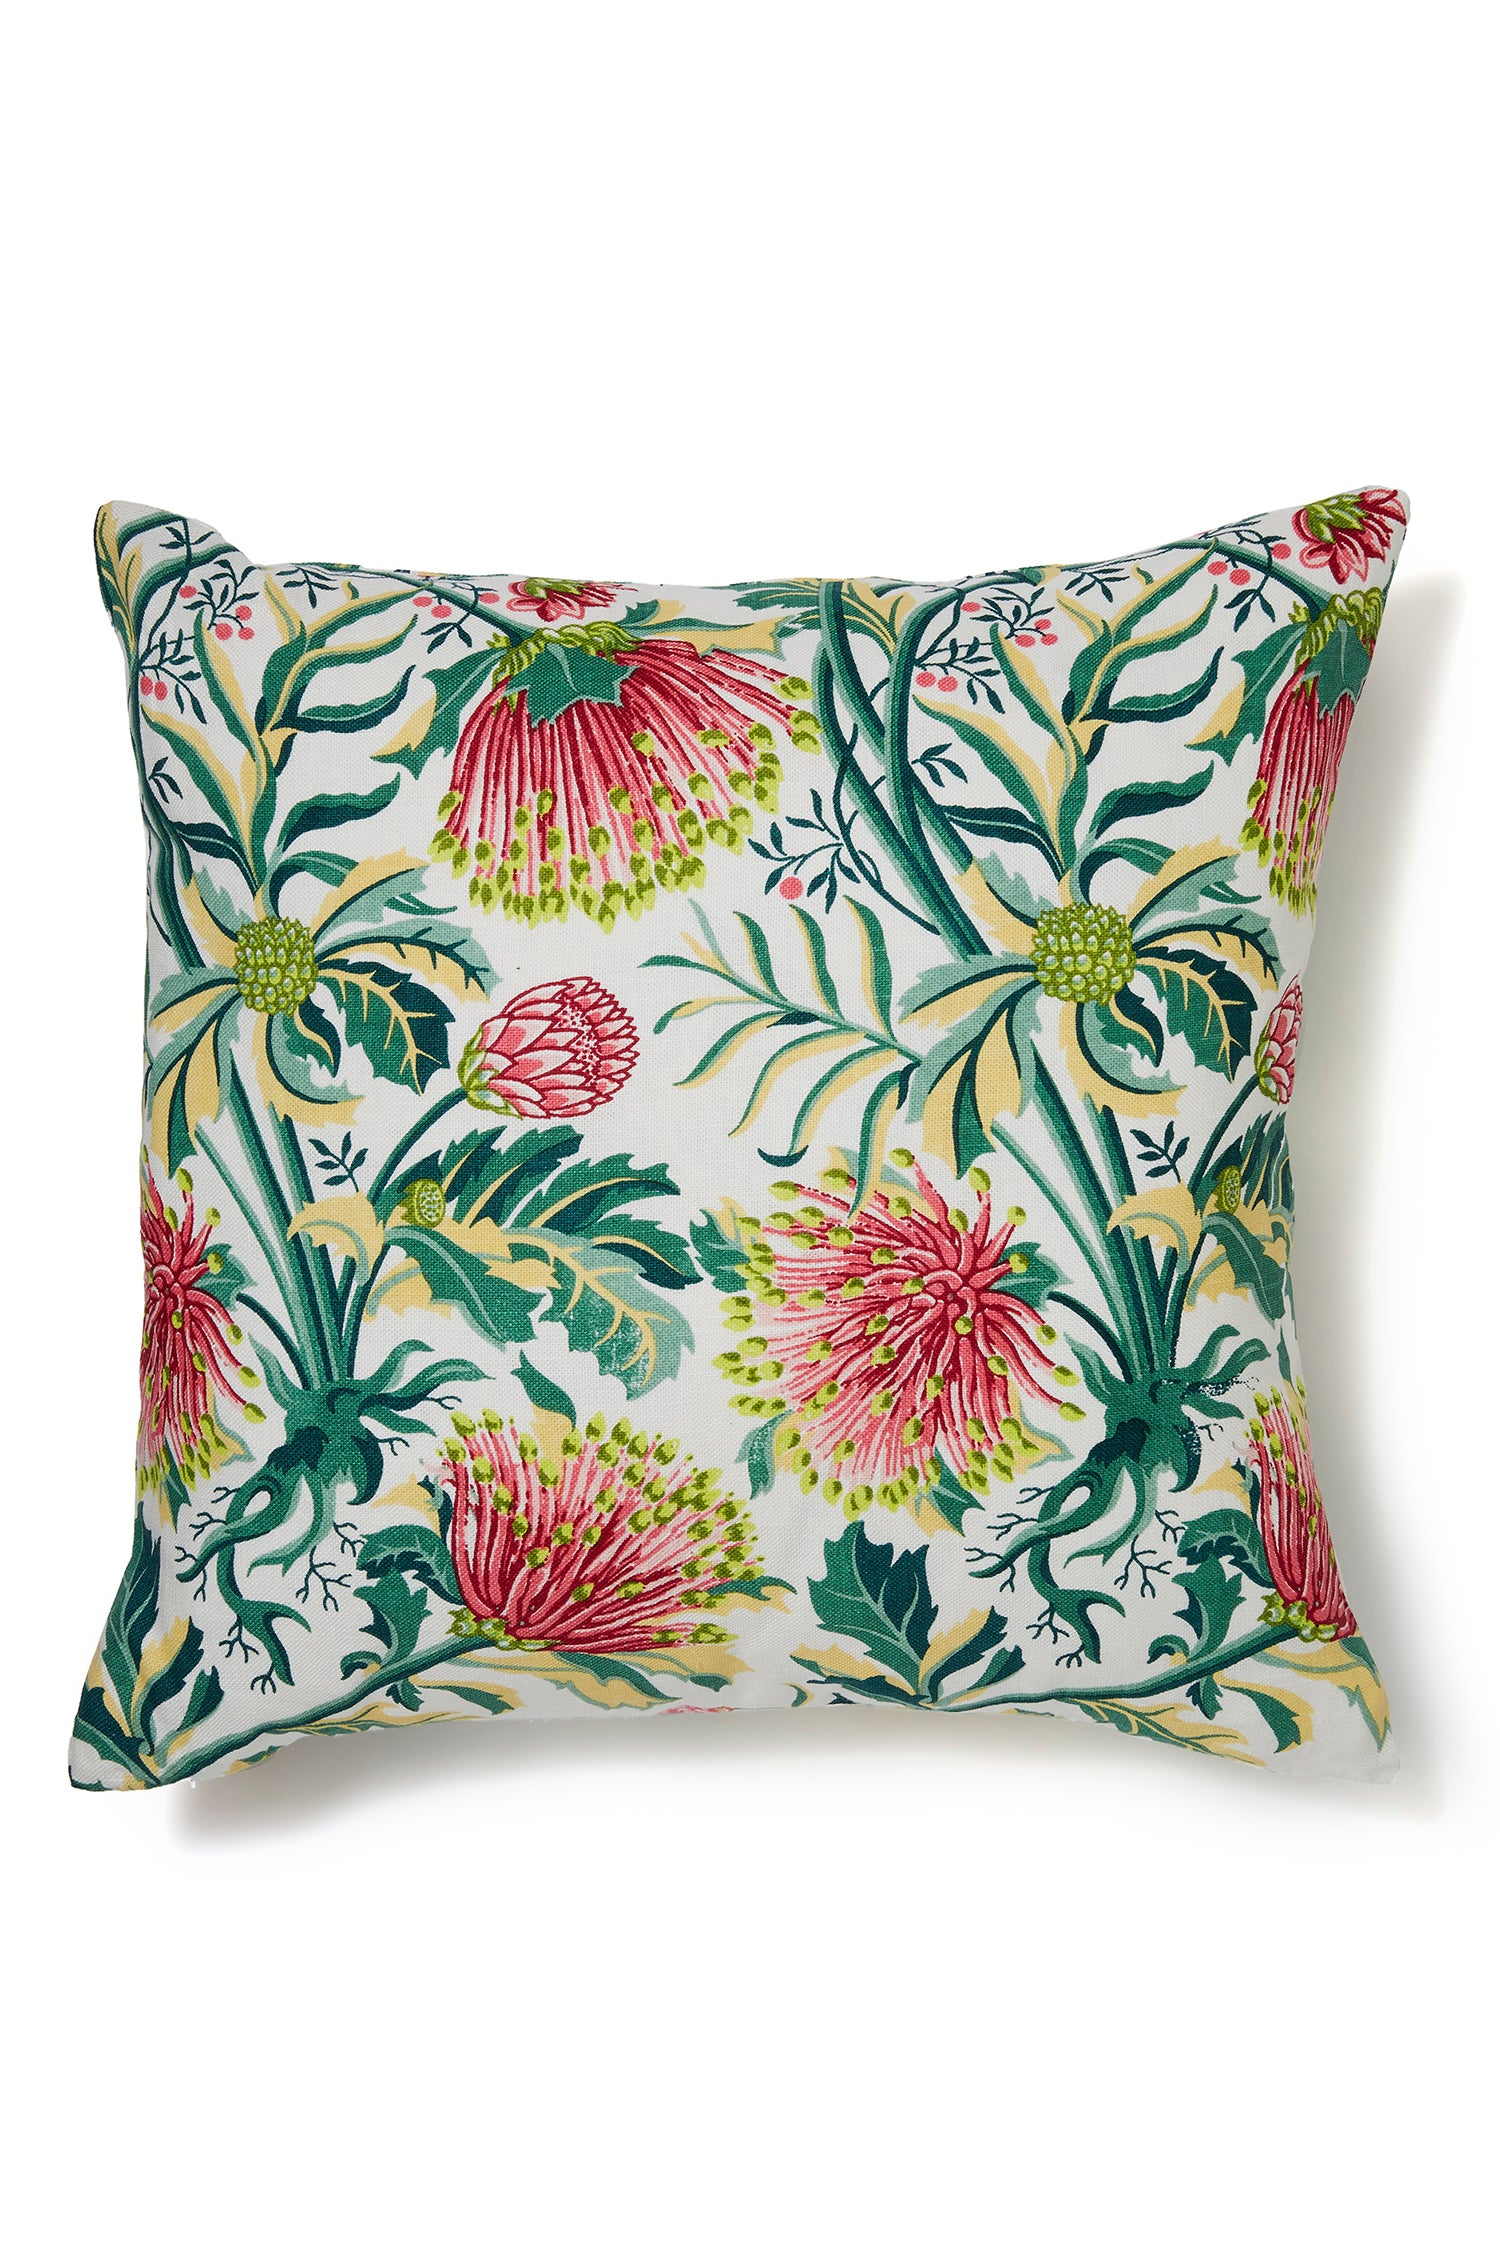 UTOPIA GOODS - 50 X 50CM CUSHION COVER - MATCHSTICK BANKSIA PINK